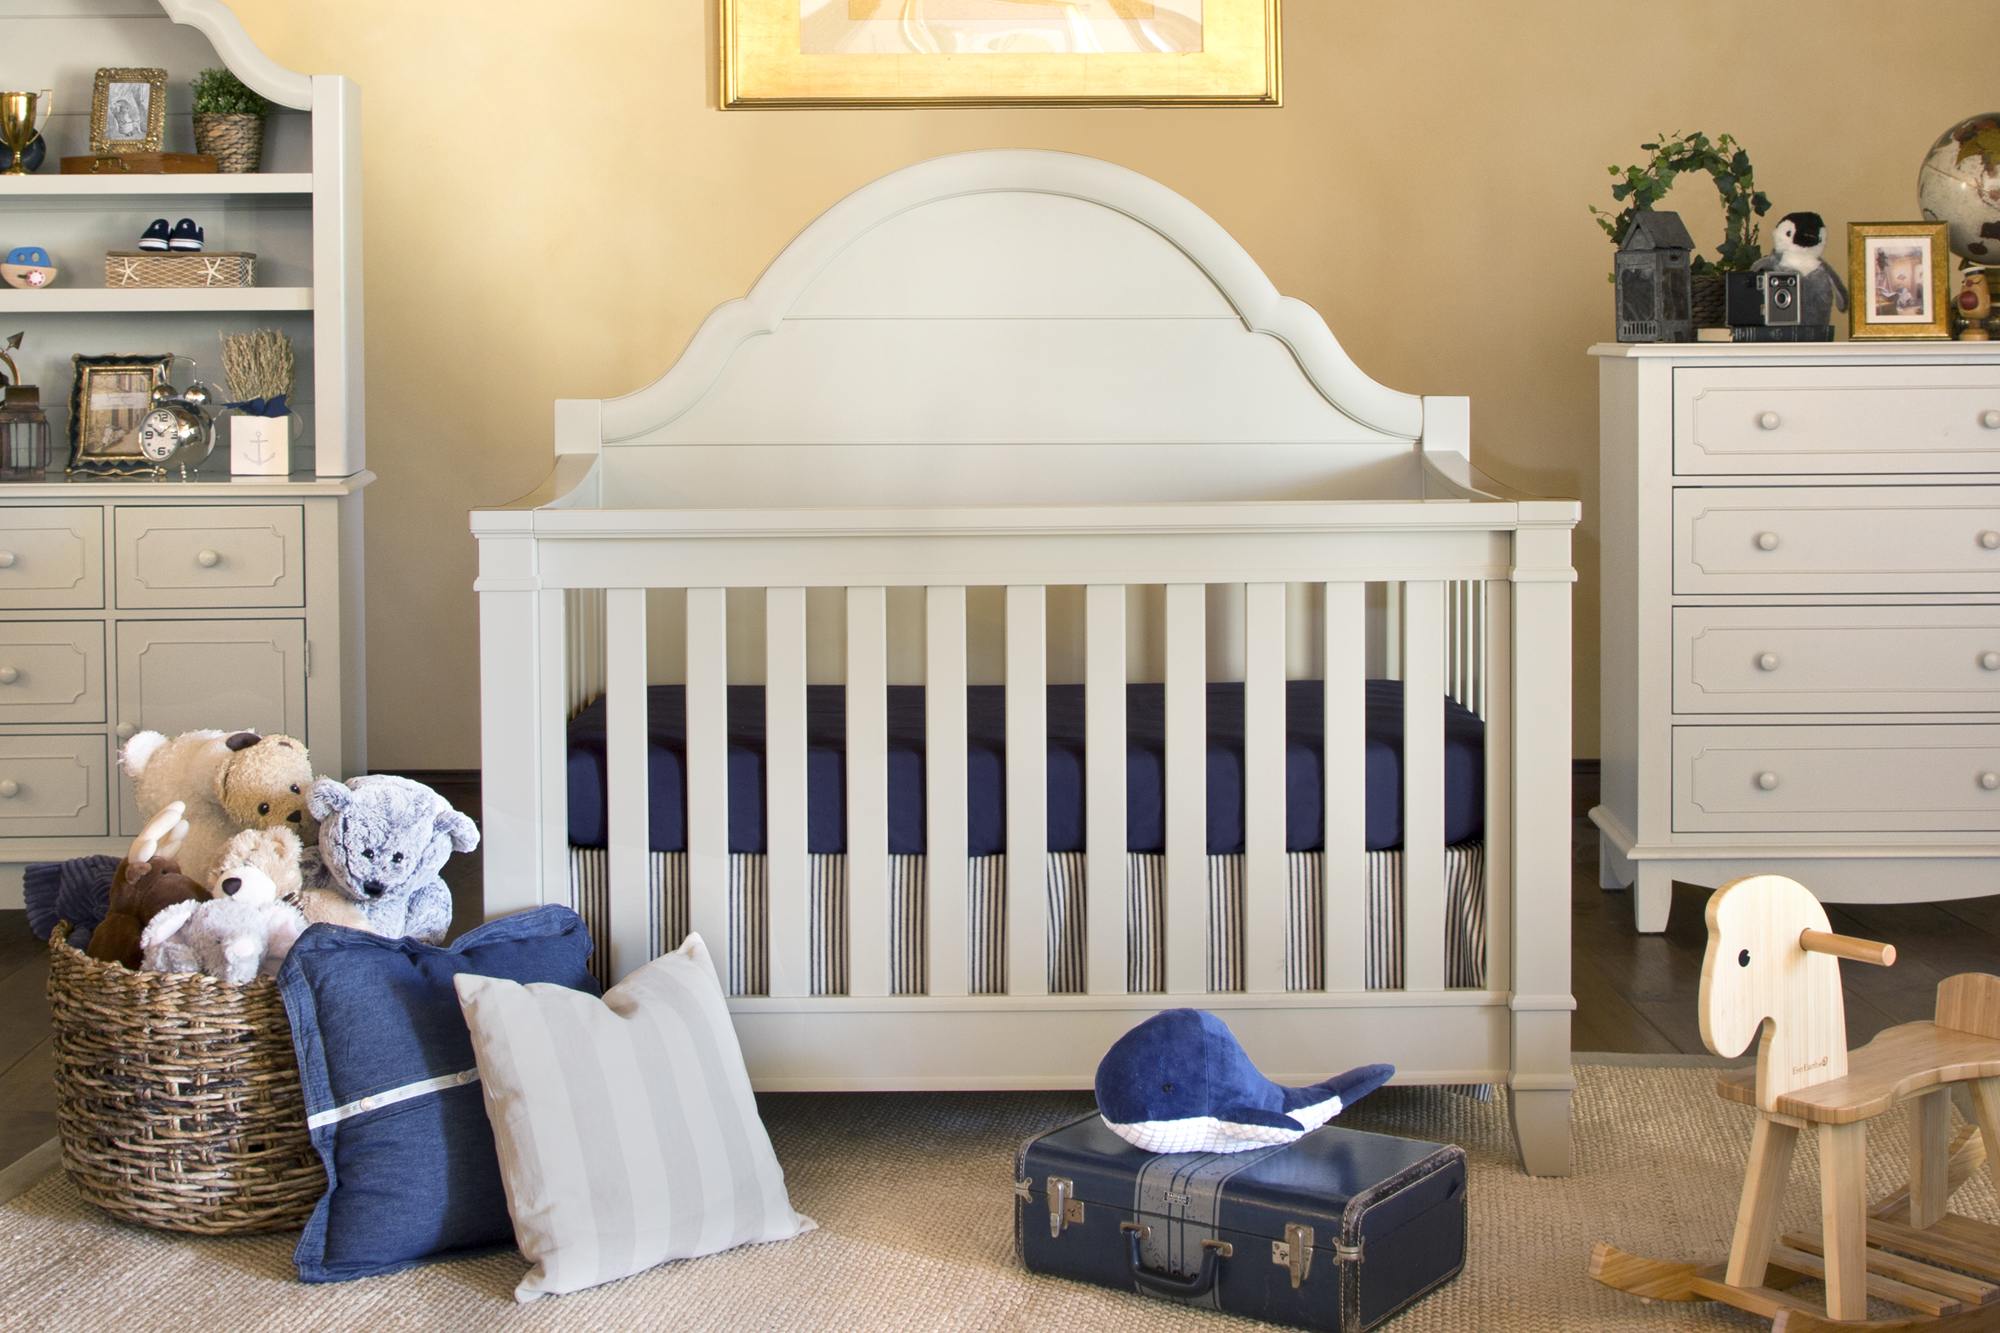 Million Dollar Baby Classic Sullivan 4-in-1 Convertible Crib